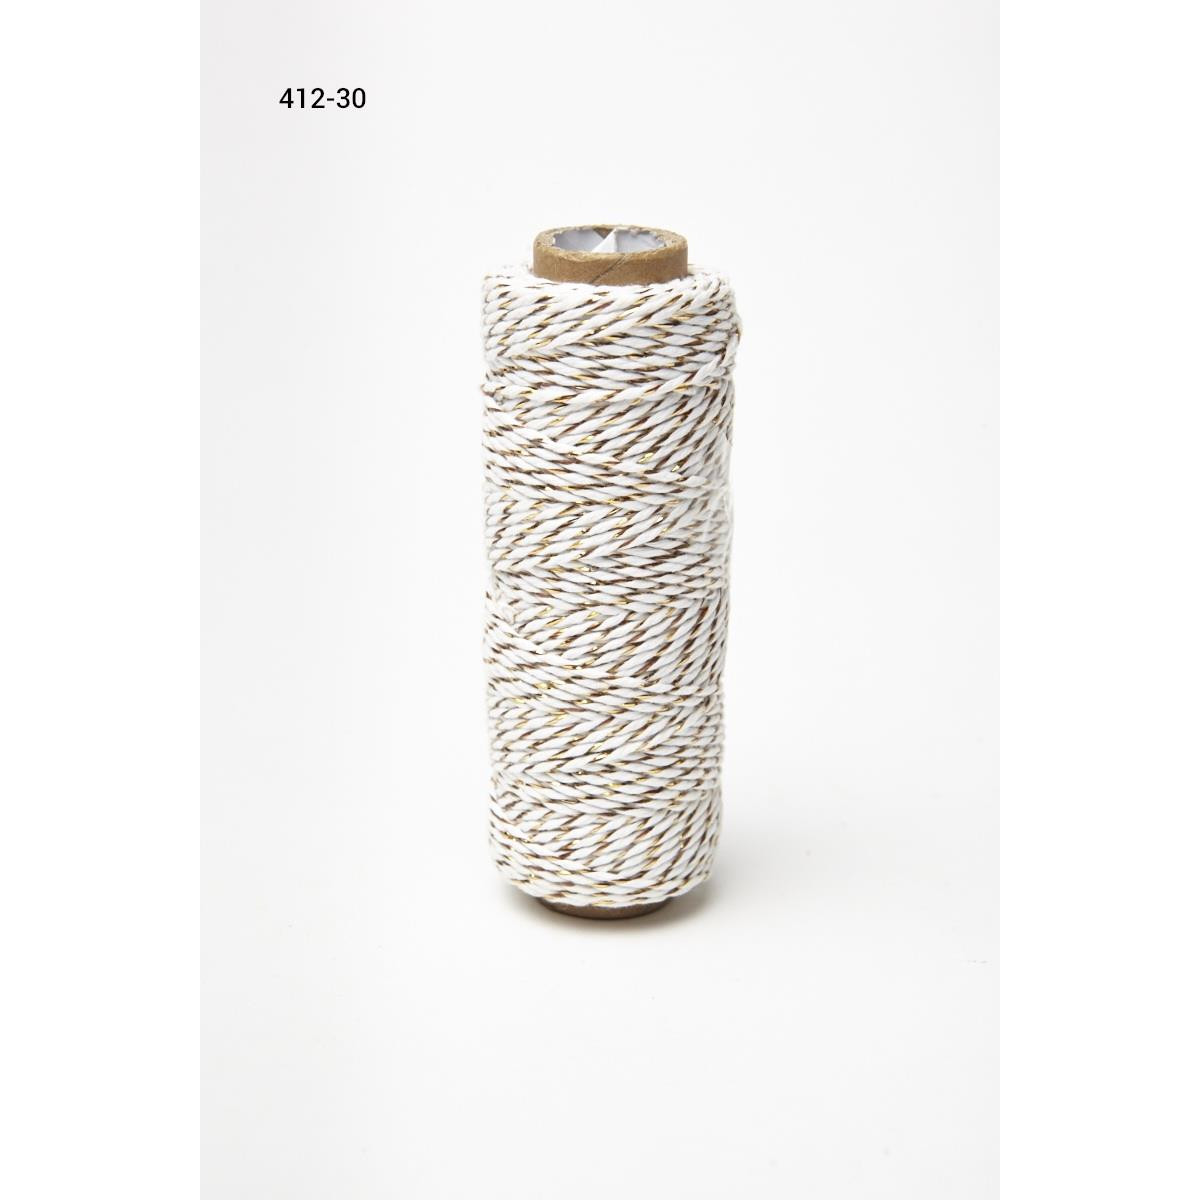 Baker's Twine Twisted Ribbon - White/Gold, May Arts - 848208007533